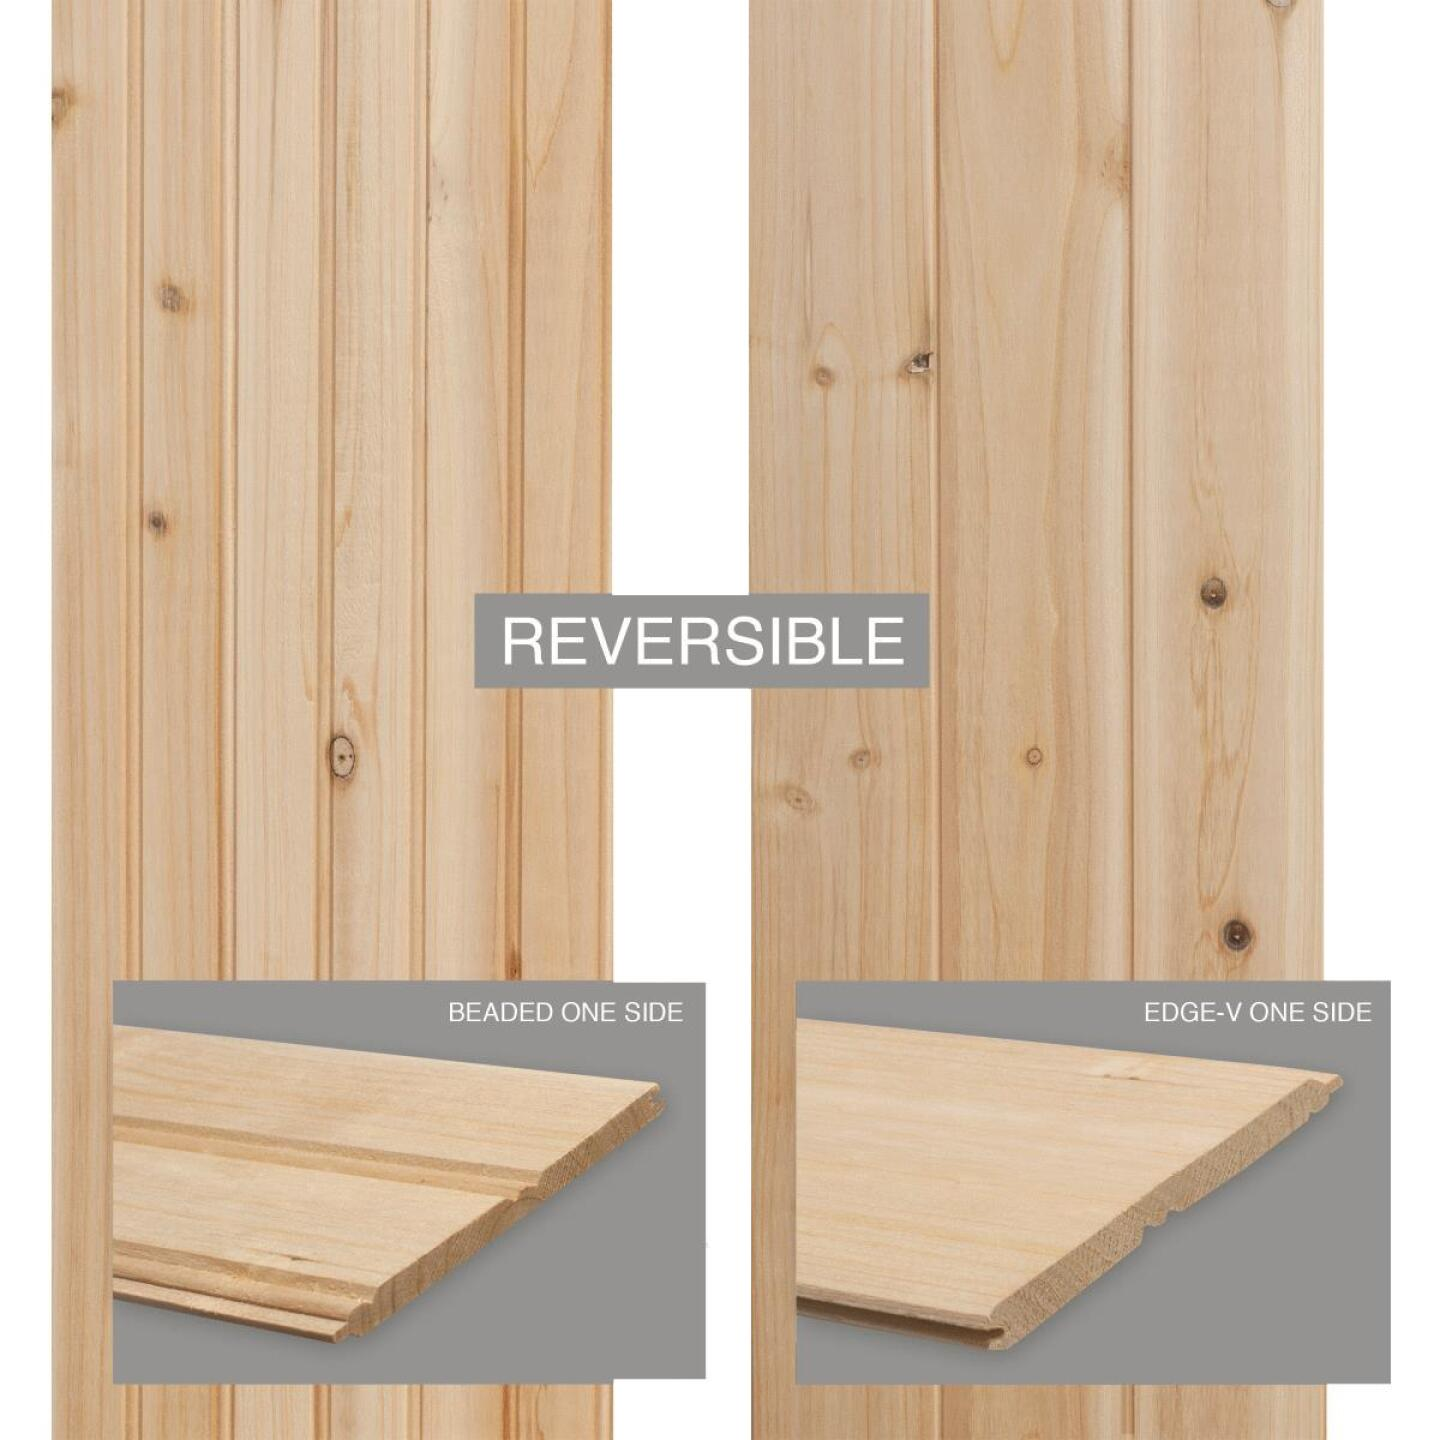 Global Product Sourcing 3-1/2 In. W. x 8 Ft. L. x 5/16 In. Thick Knotty Cedar Reversible Profile Wall Plank (6-Pack) Image 3